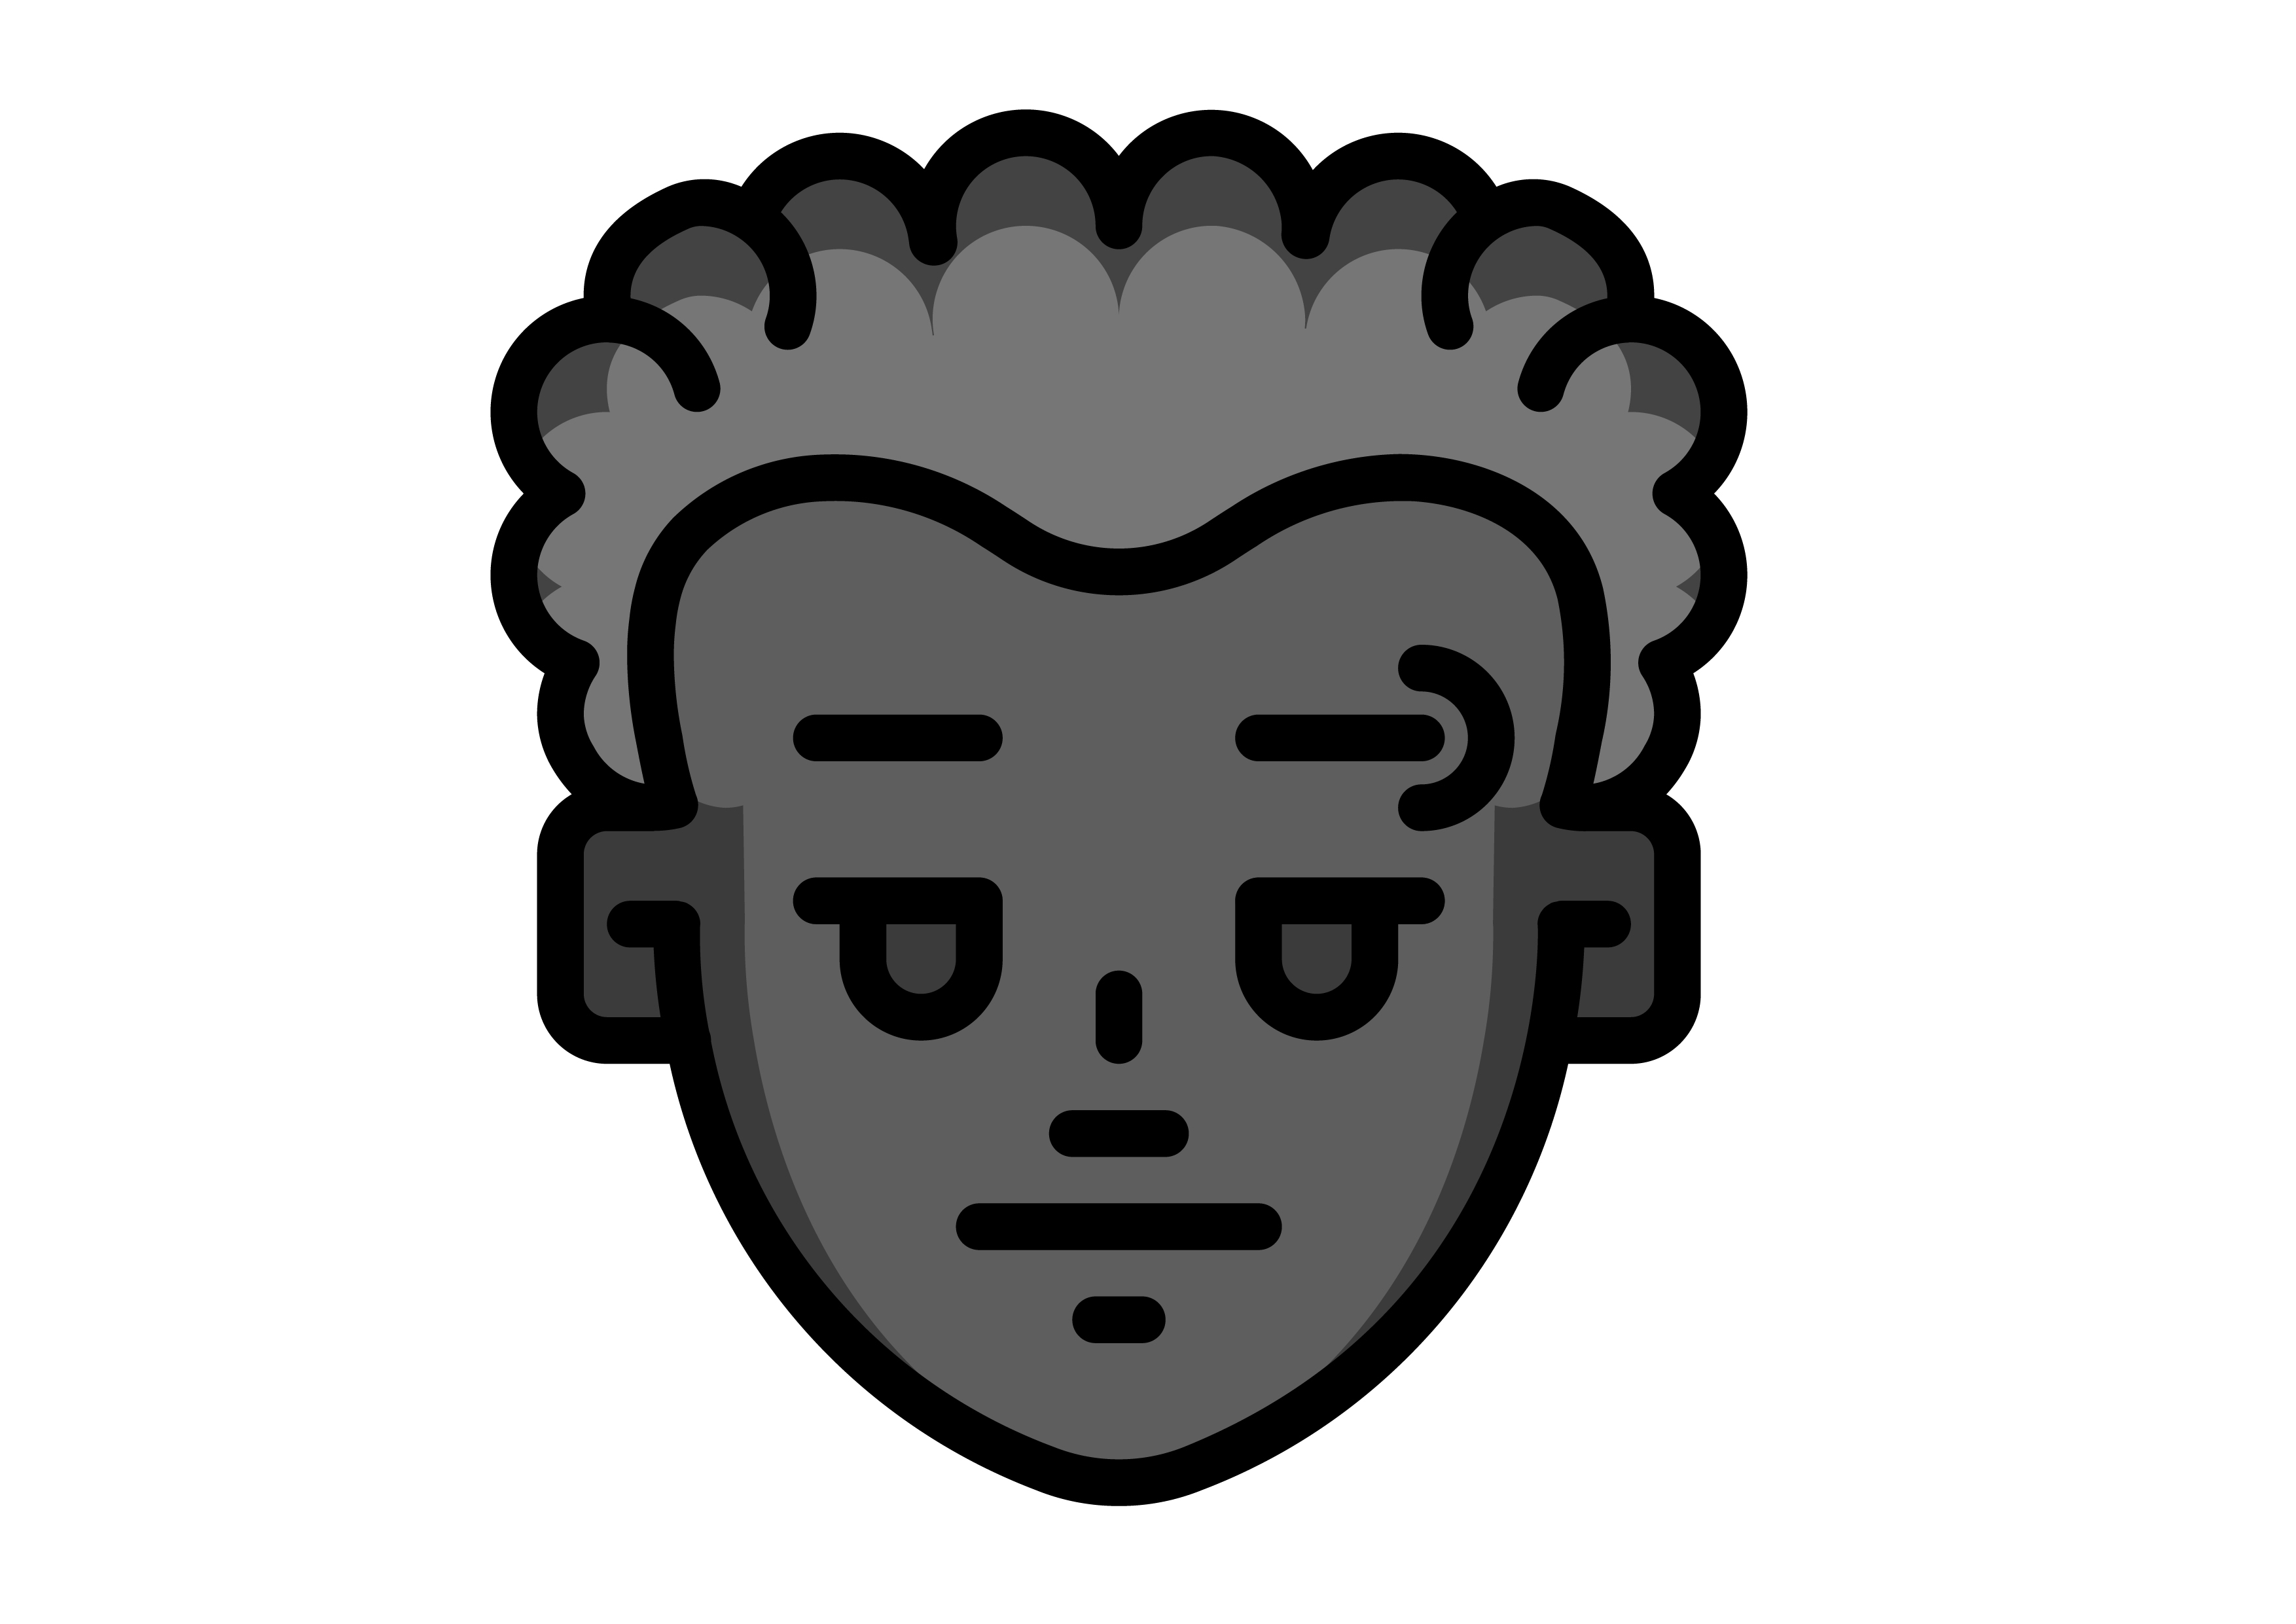 Download Free Avatar Male With Curly Hair Graphic By Ibua9900 Creative Fabrica for Cricut Explore, Silhouette and other cutting machines.